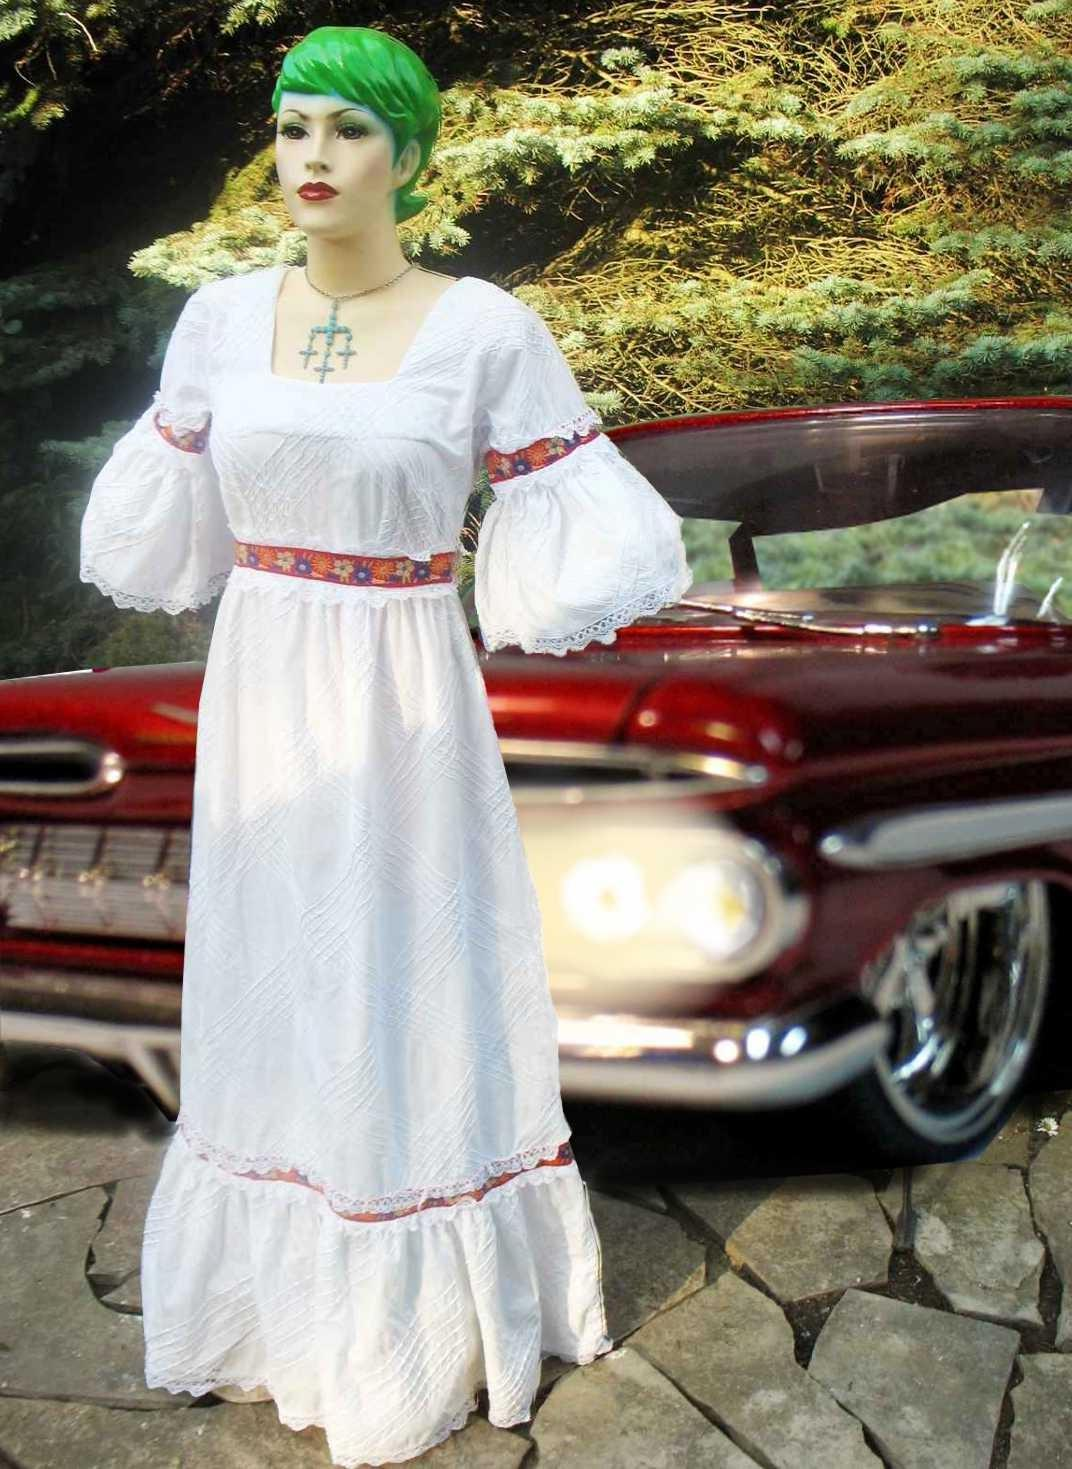 VTG 70s MeXiCaN WEDDING Dress. From kidlee